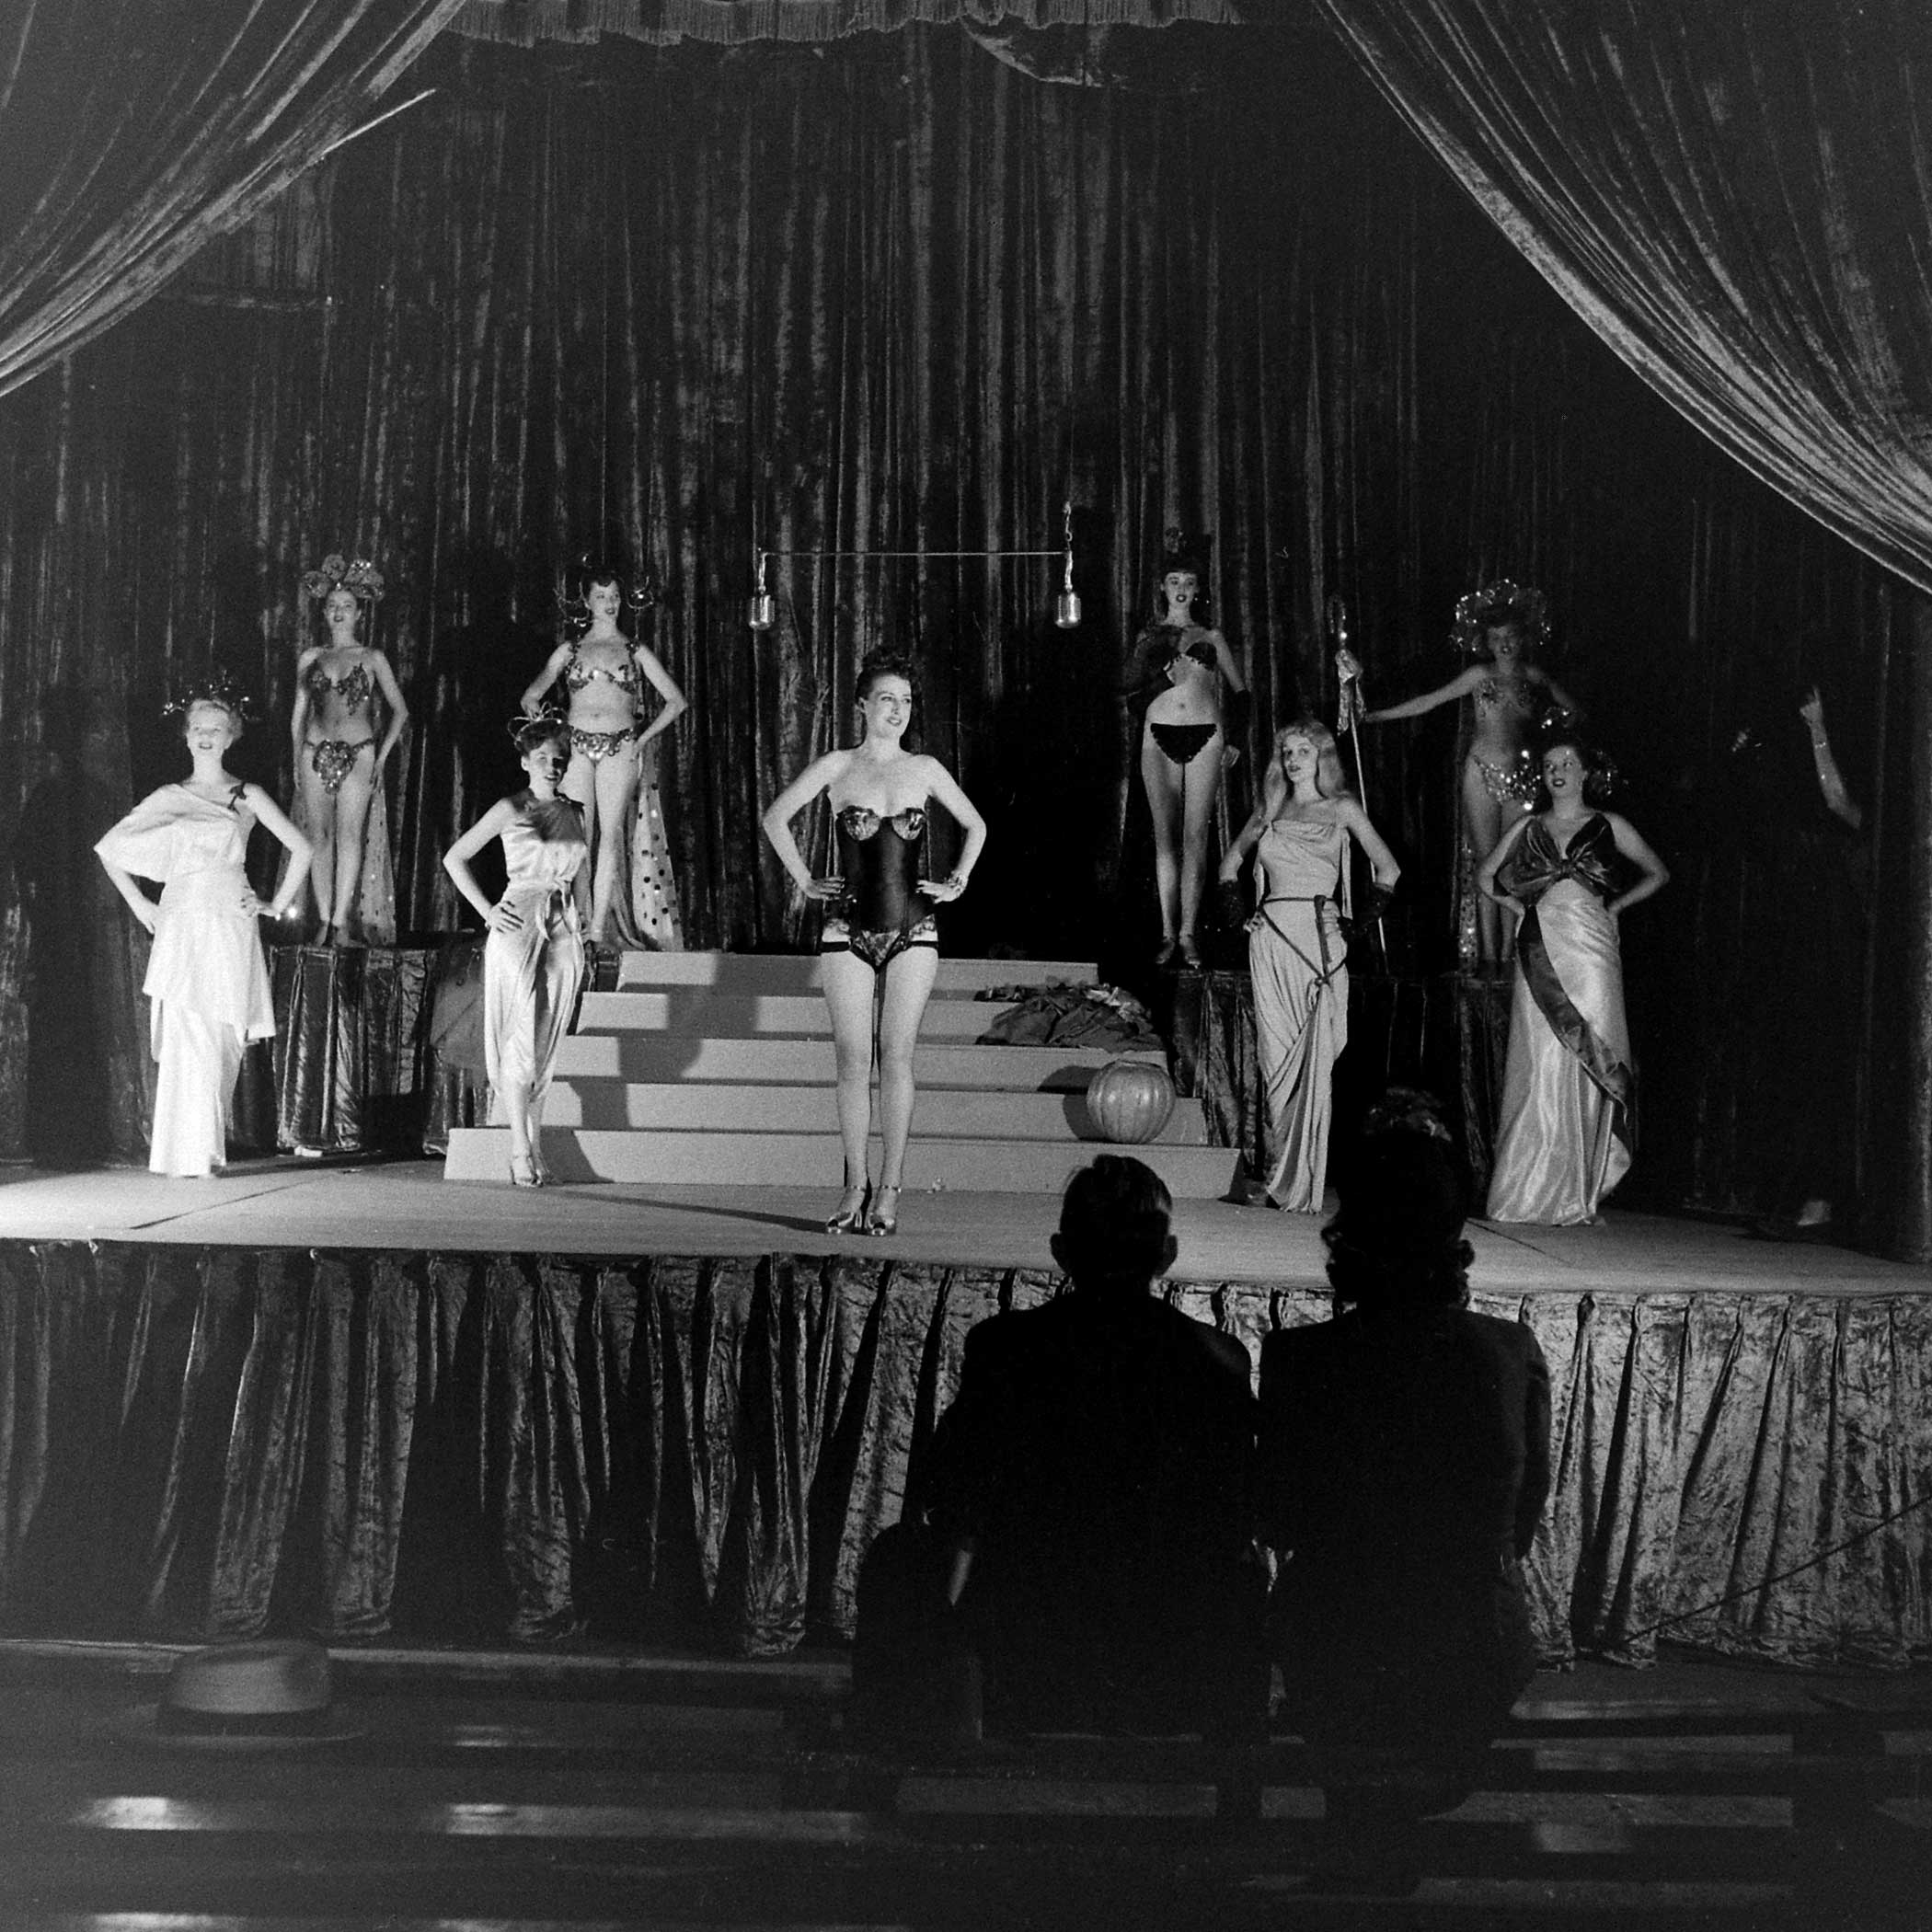 <b>Not published in LIFE.</b> Burlesque star Gypsy Rose Lee (center) and other performers in Memphis, Tenn., 1949.